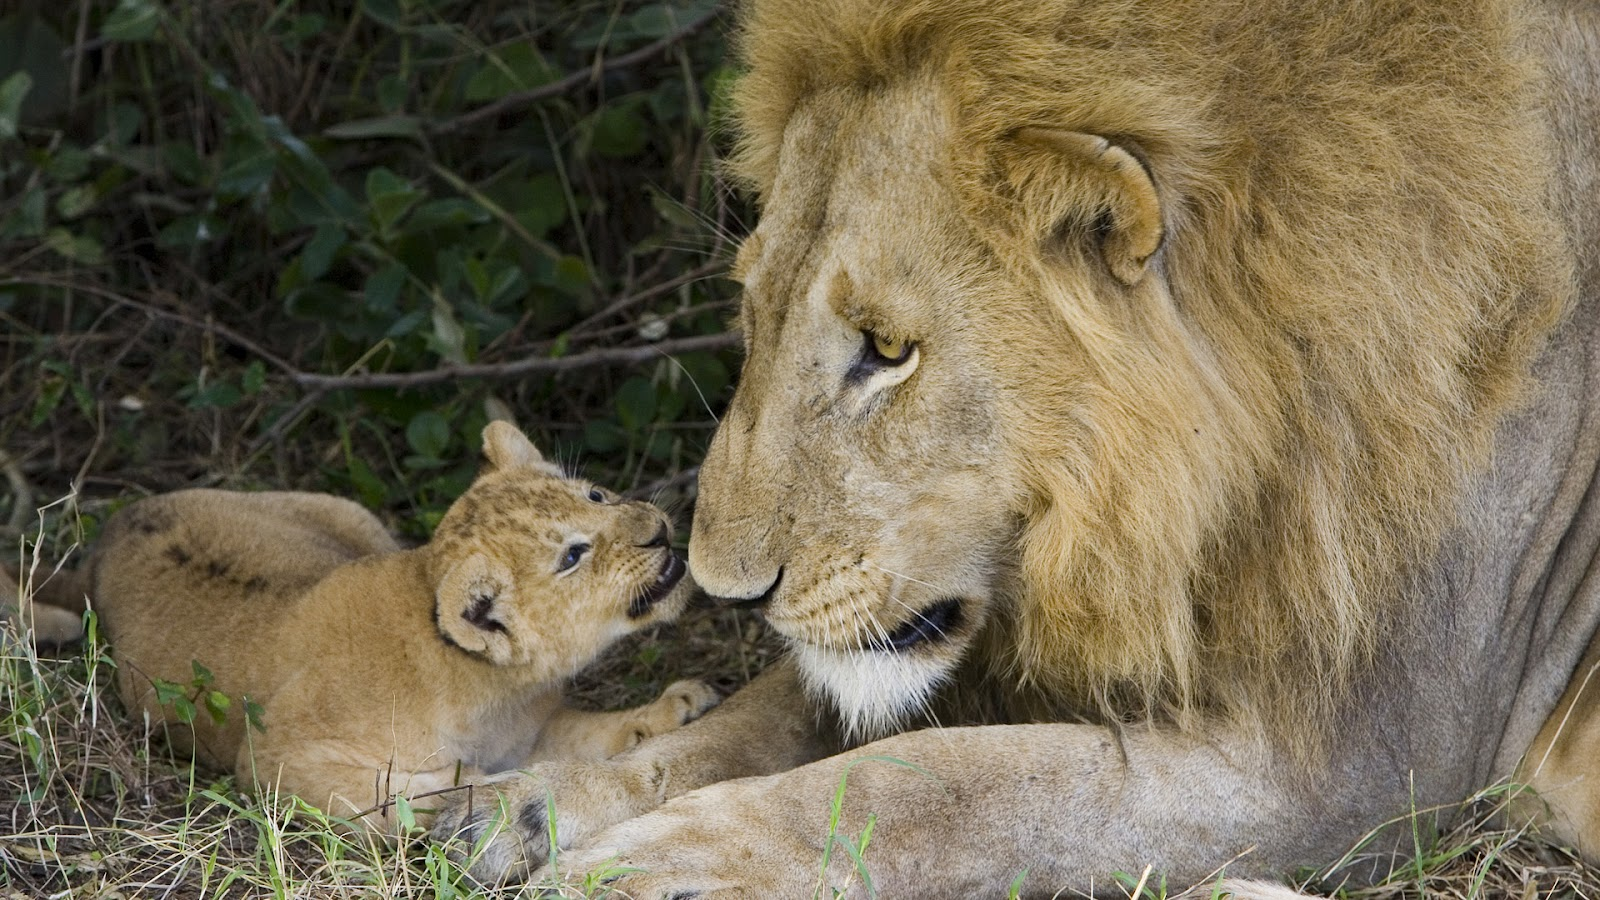 animals hd amazing wallpapers animal lion cub lions african con adult 1001places leo lionceau google male bing baby